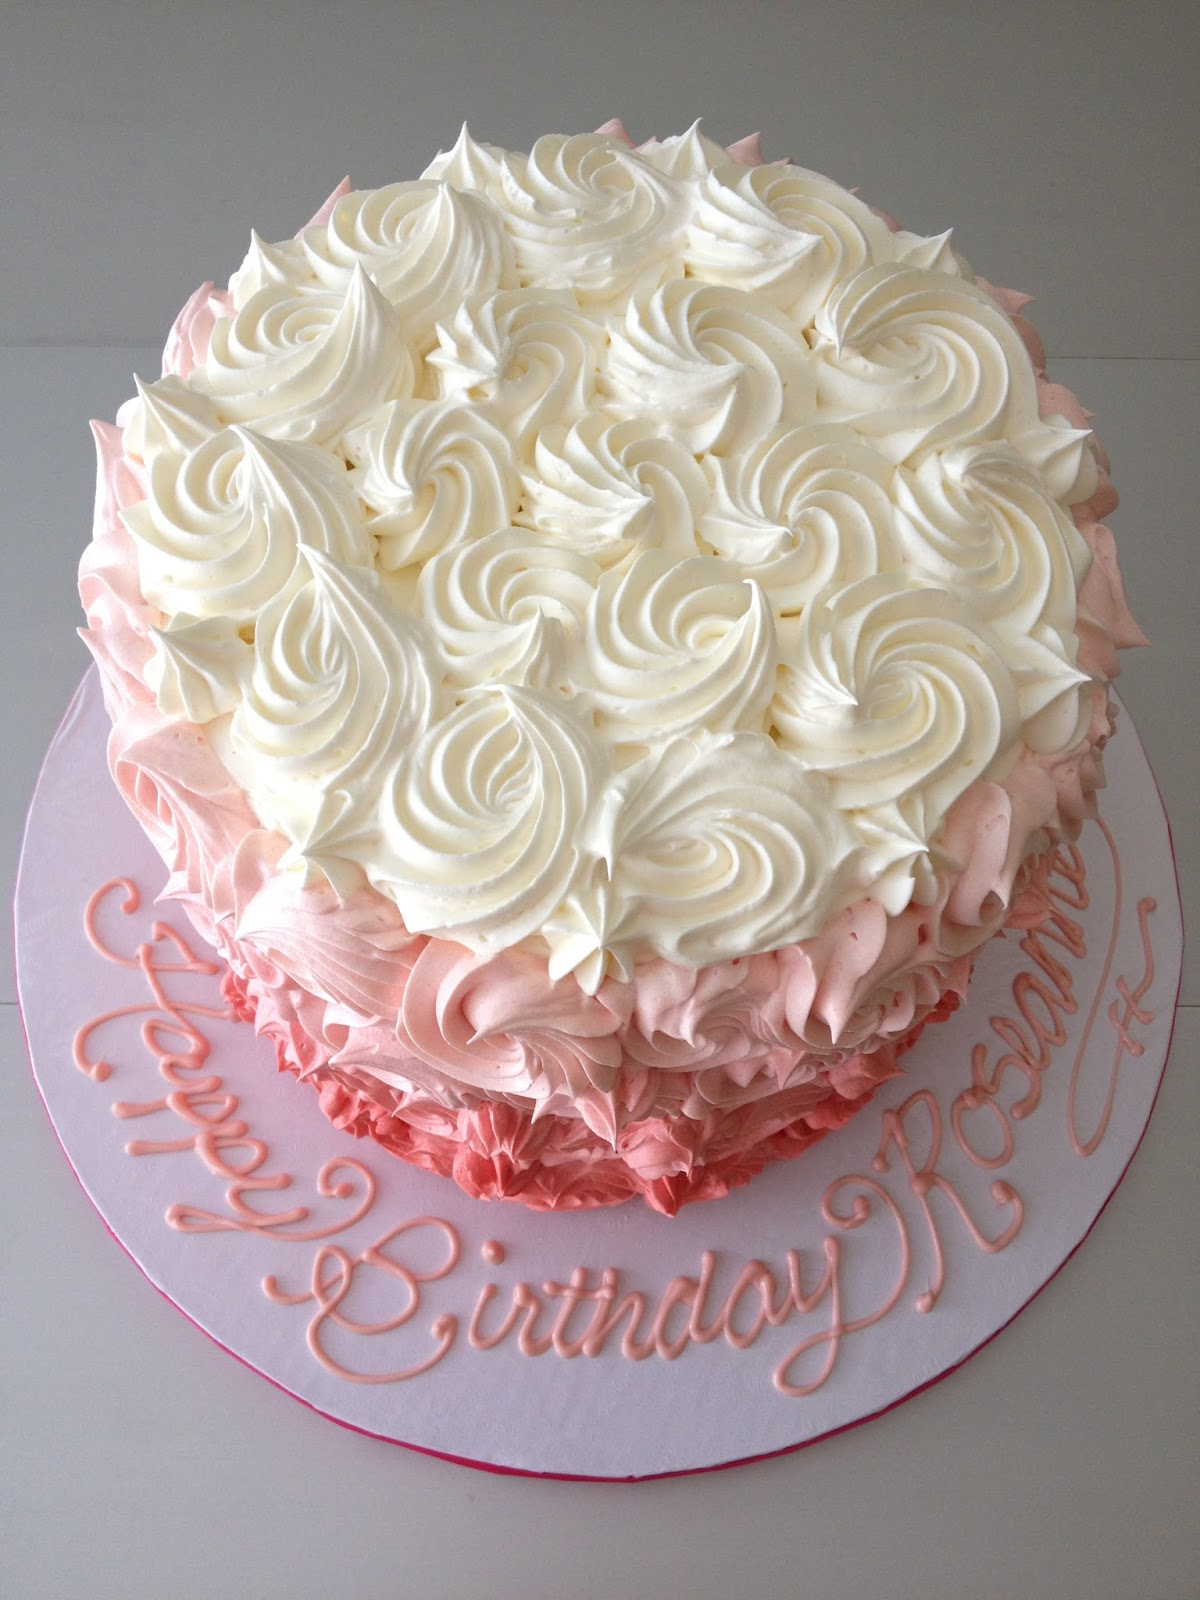 Dough and Batter a pink ombre birthday cake